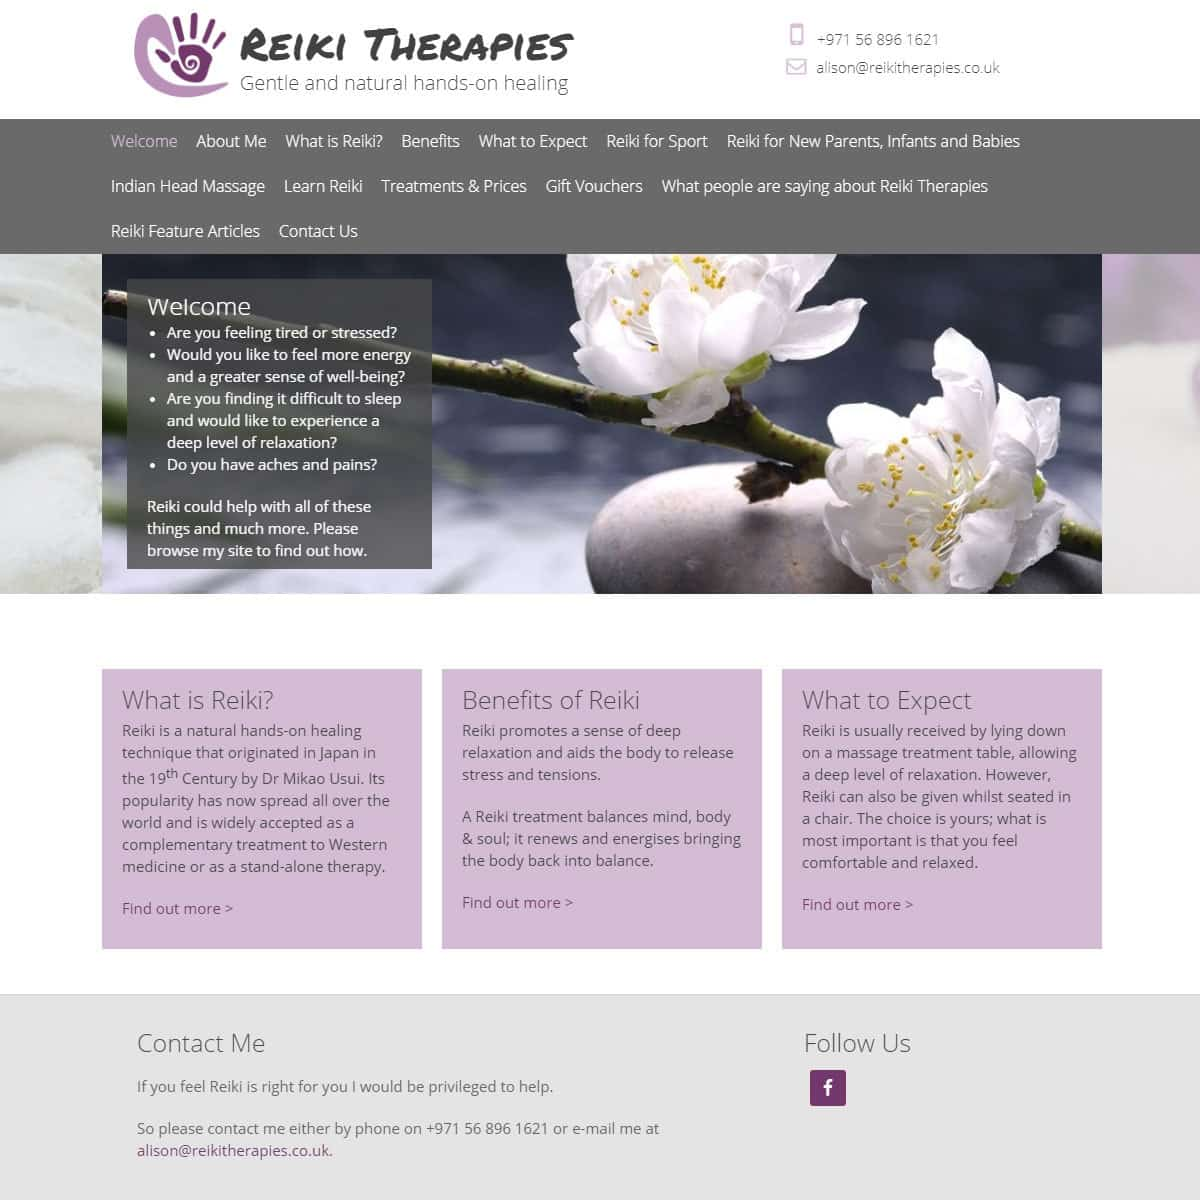 reikitherapies